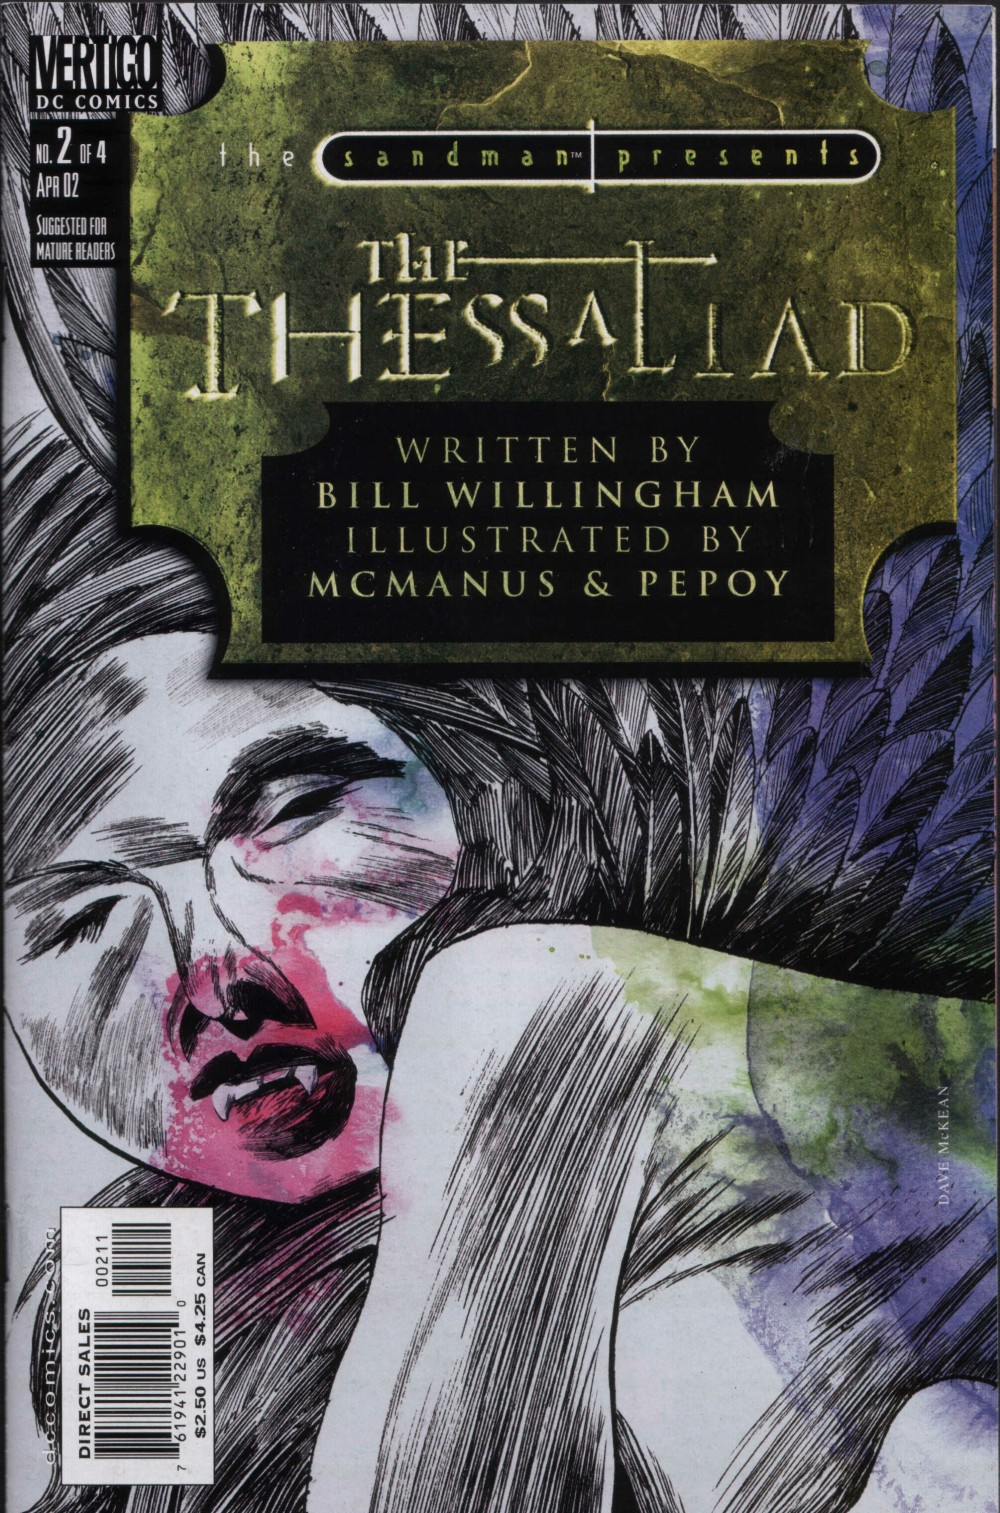 Thessalliad [DC Vertigo] Mini 1 0002.jpg